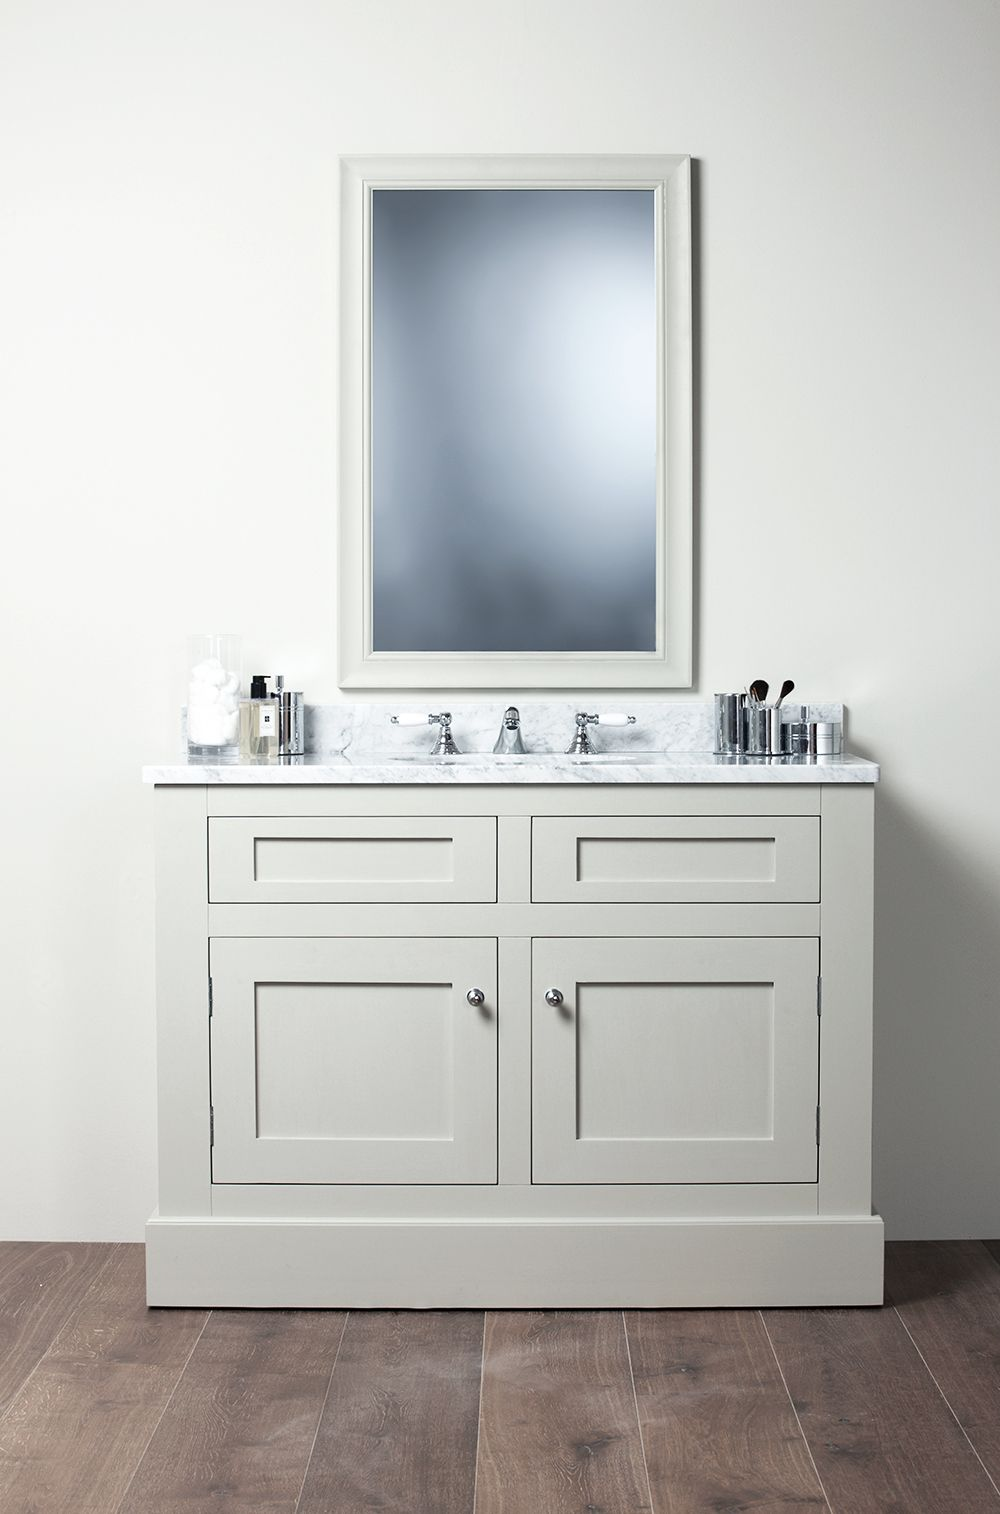 Traditional Bathroom Vanities And Cabinets shaker style bathroom vanity unit: shaker bathroom vanity unit